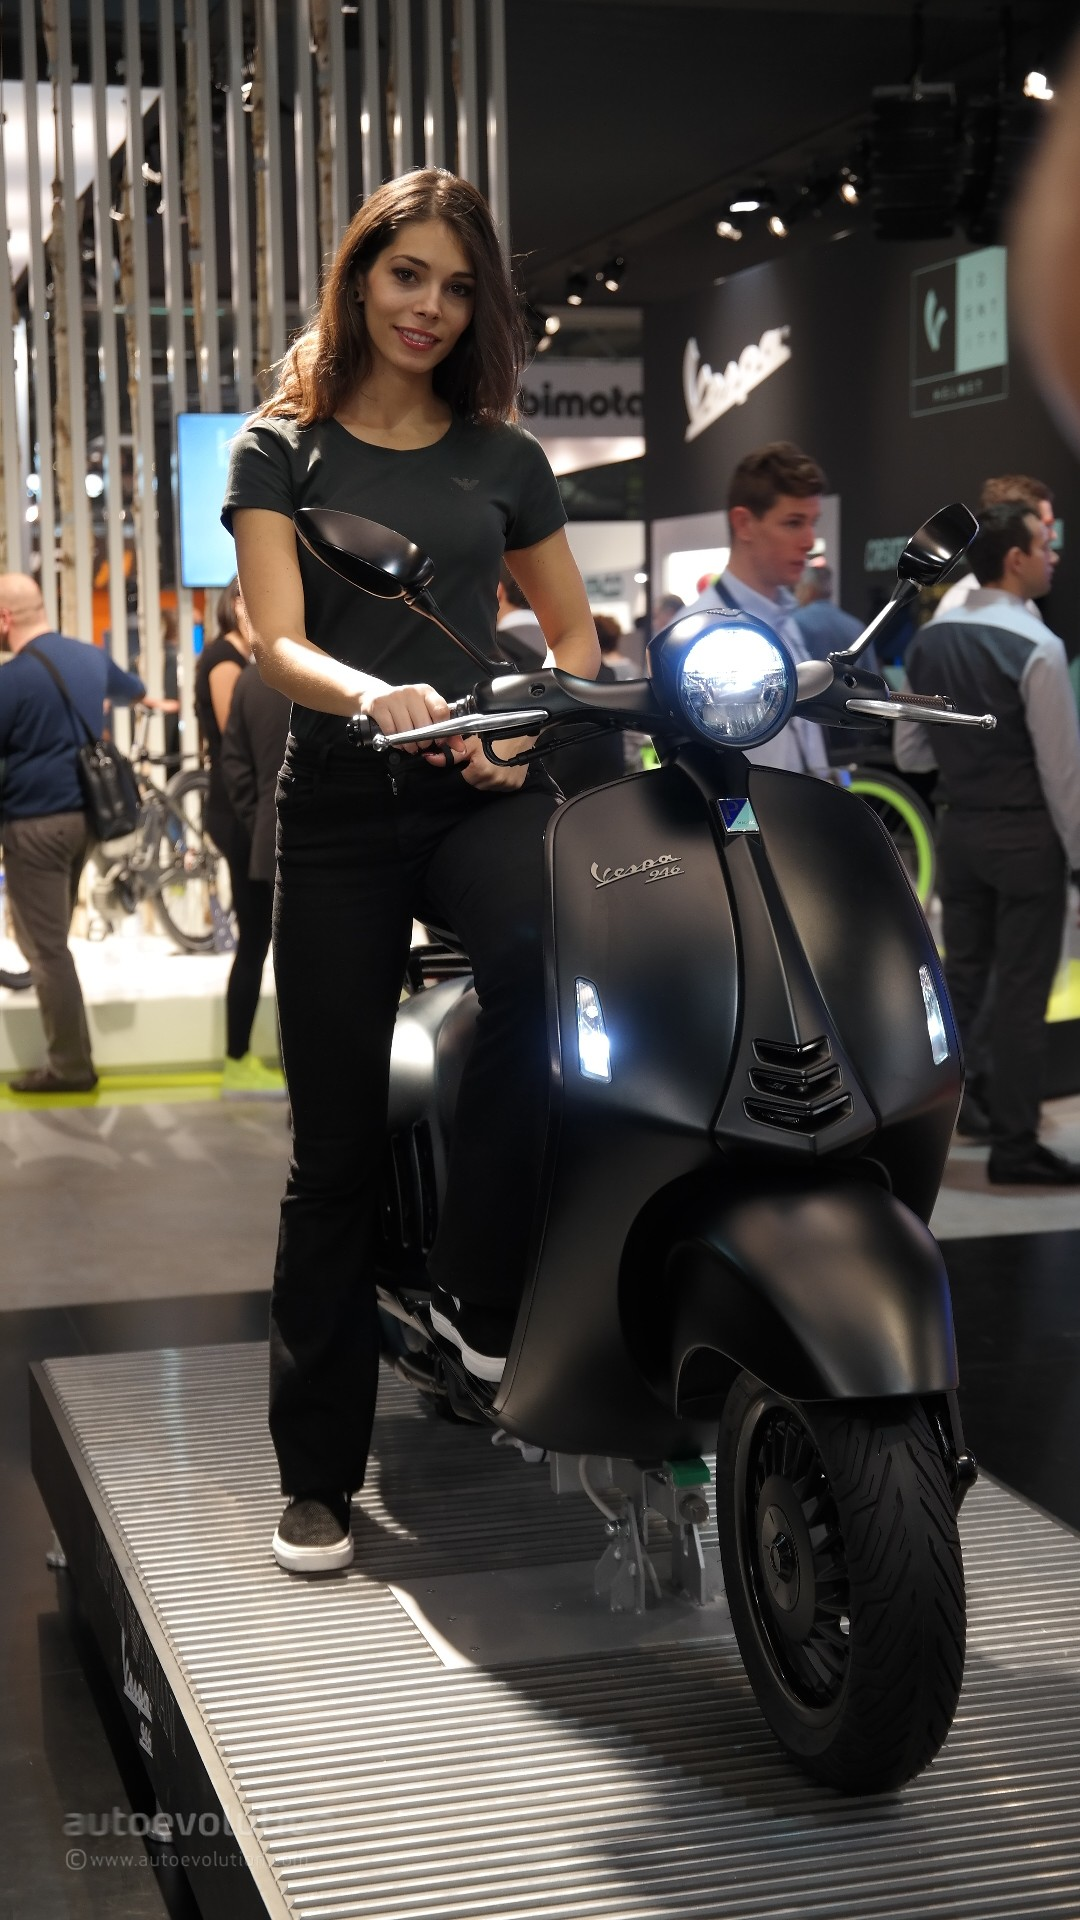 More Eicma 2015 Girls For A Nice Weekend Autoevolution